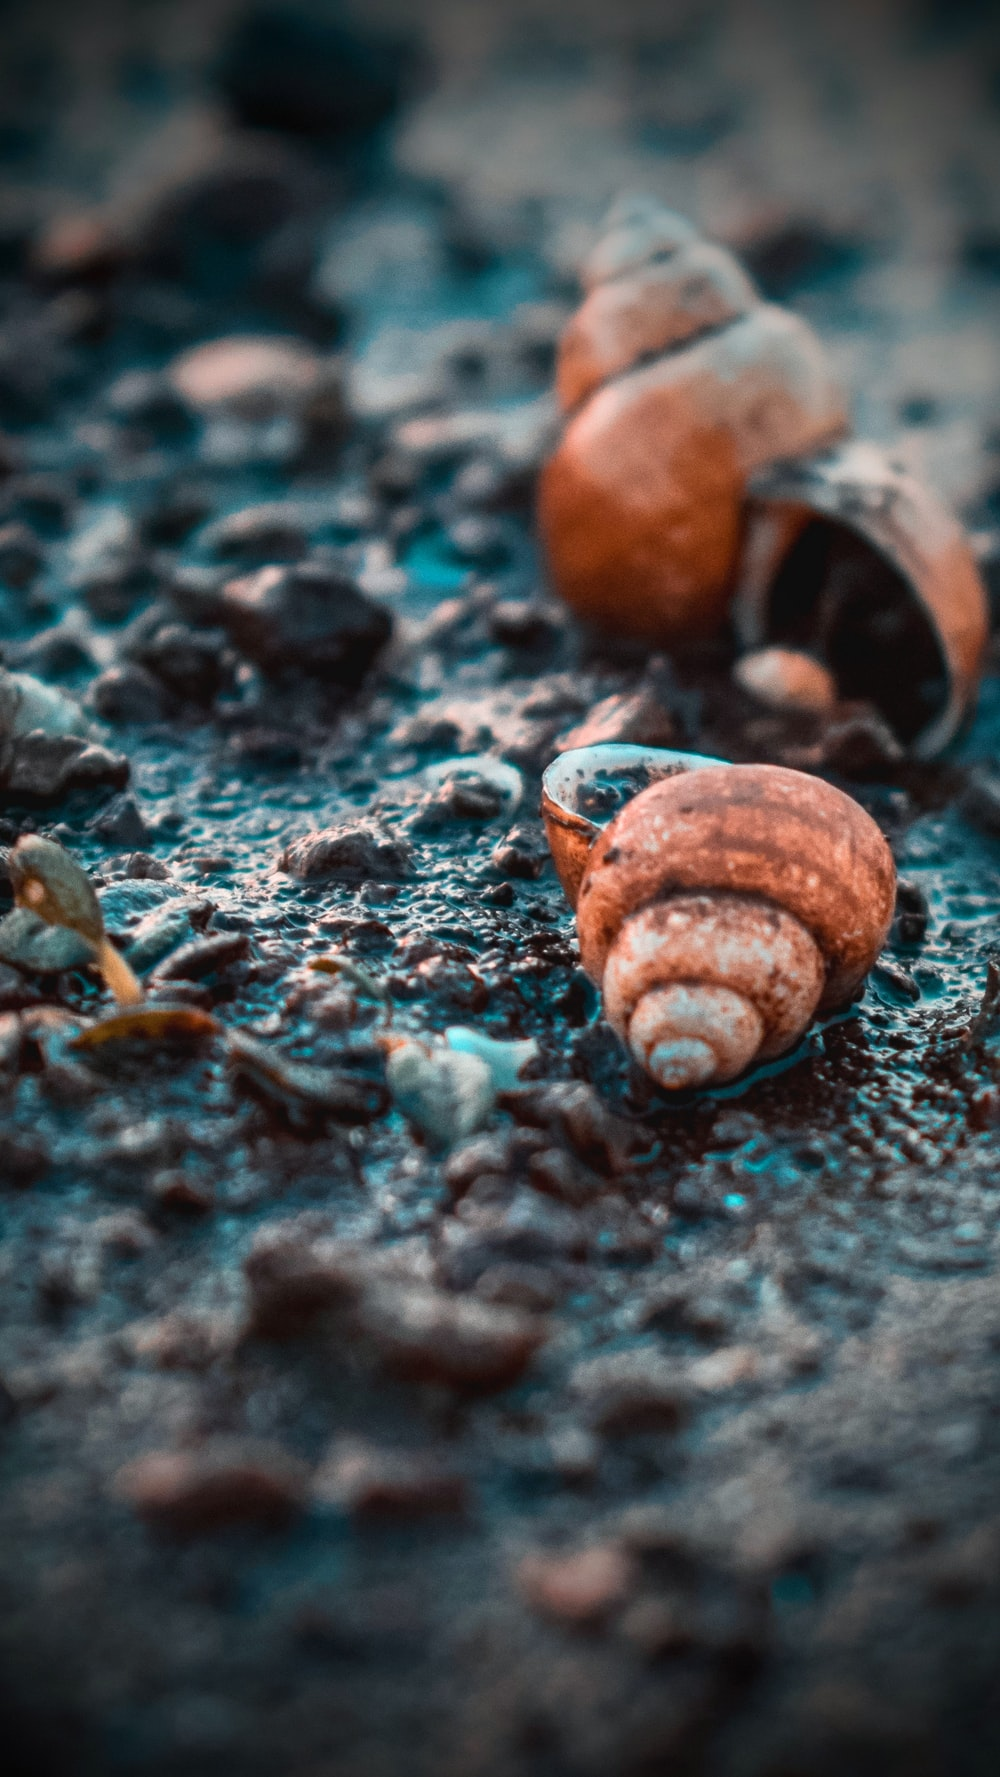 two snails on soil ground